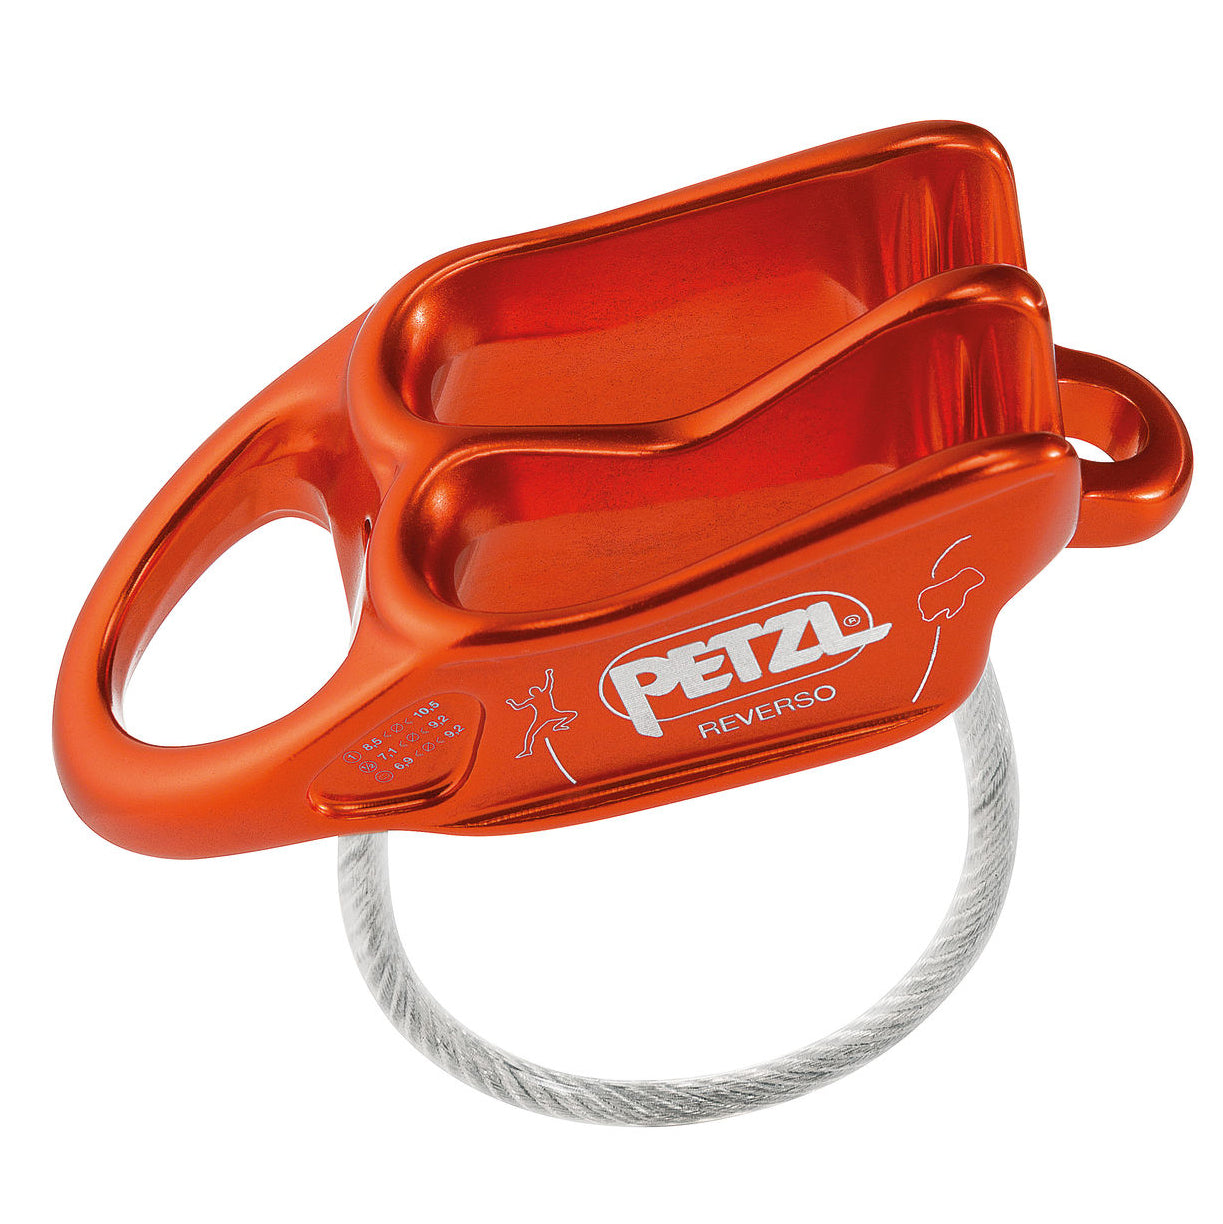 the petzl reverso belay device, in orange